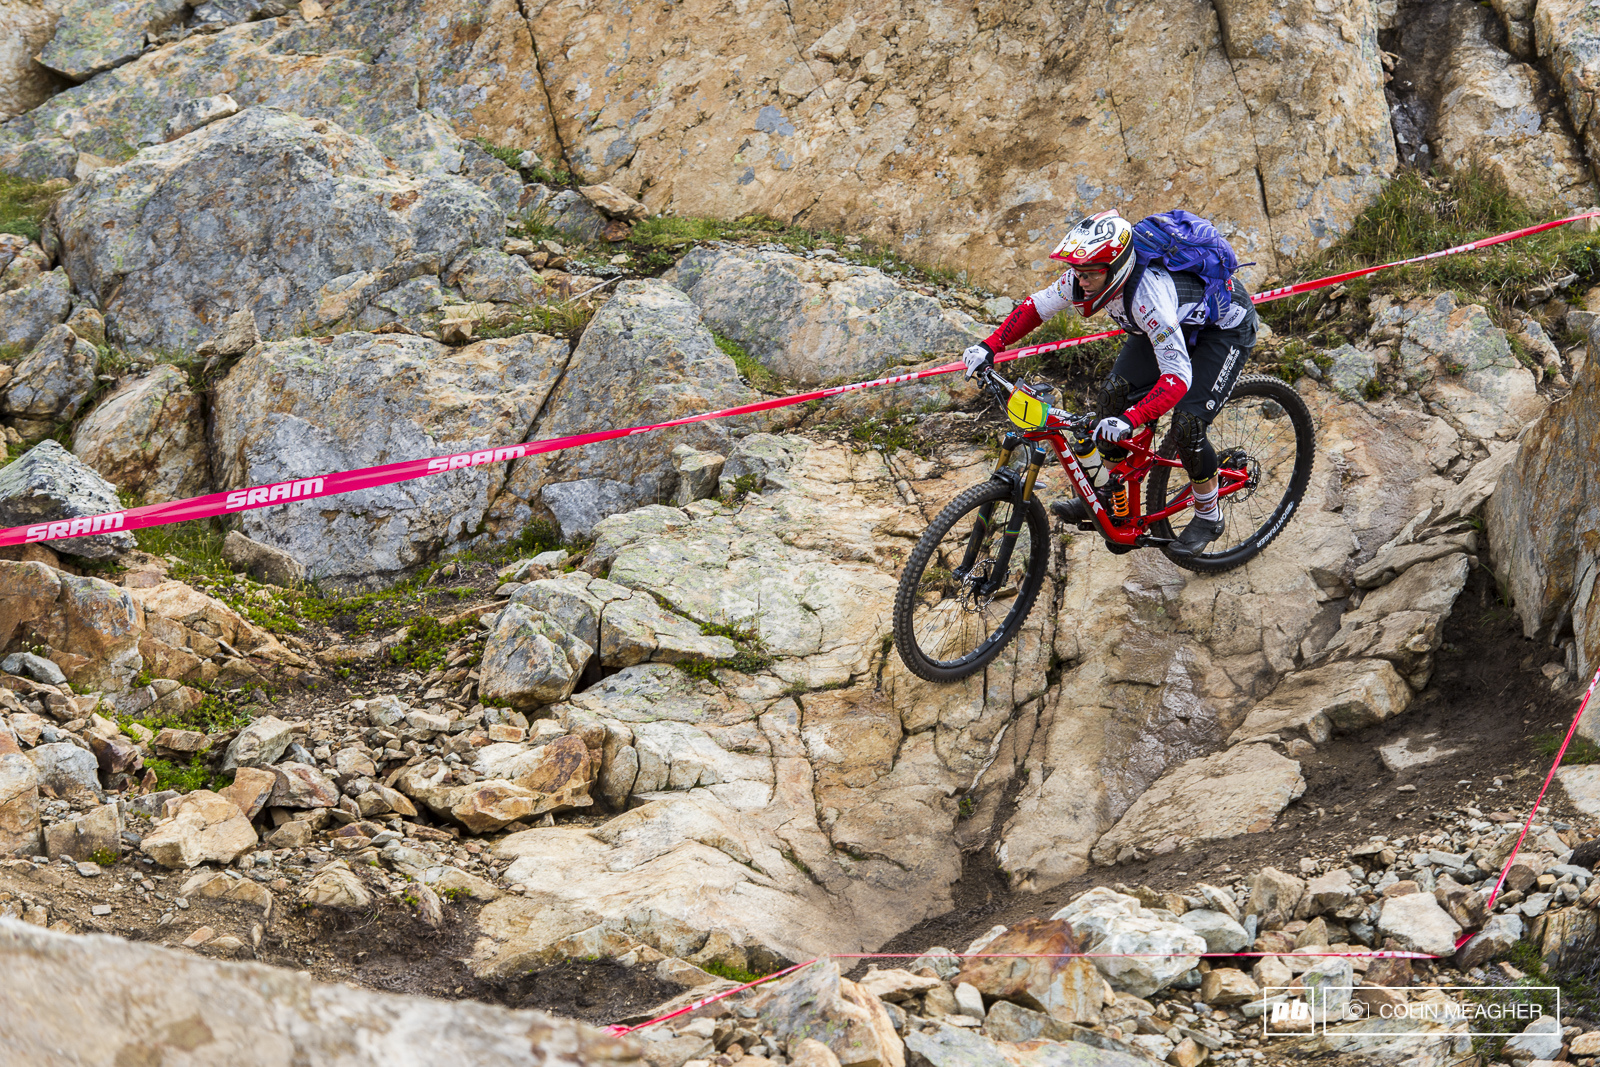 Tracey Moseley is back on top after that bout of altitude sickness took the wind out of her sails in Colorado last week but Ceclie Ravenol was not so far back as she has been in other races this year.